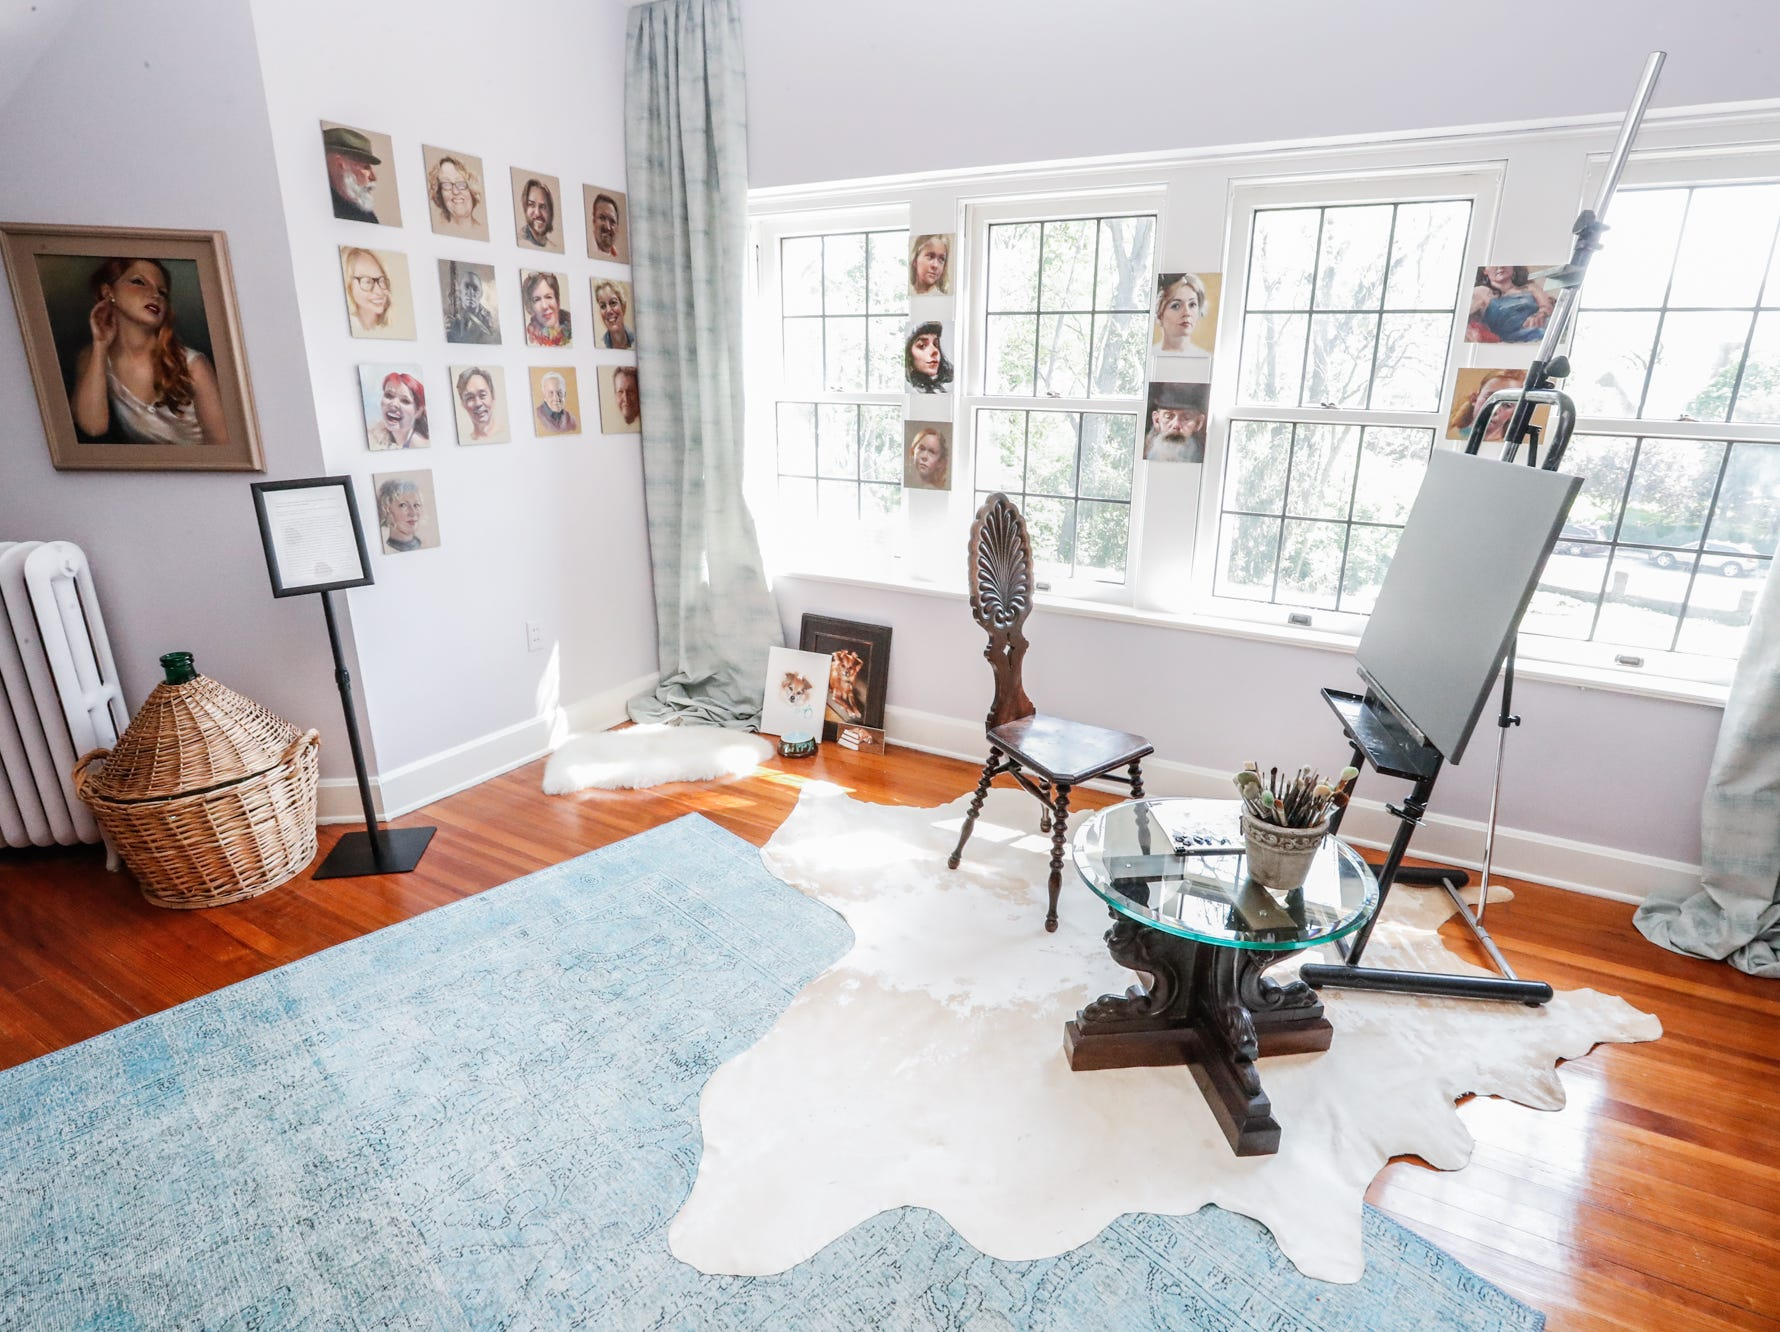 """The """"Artists Loft"""", designed by Tom Karecki and Jerald Faulstich, of Thomas an Jayne Interior Design, inside The 58th annual St. Margaret's Hospital Guild Decorators' Show House and Gardens, located at 4160 Washington Blvd., Indianapolis, on Wednesday, May 8, 2019."""